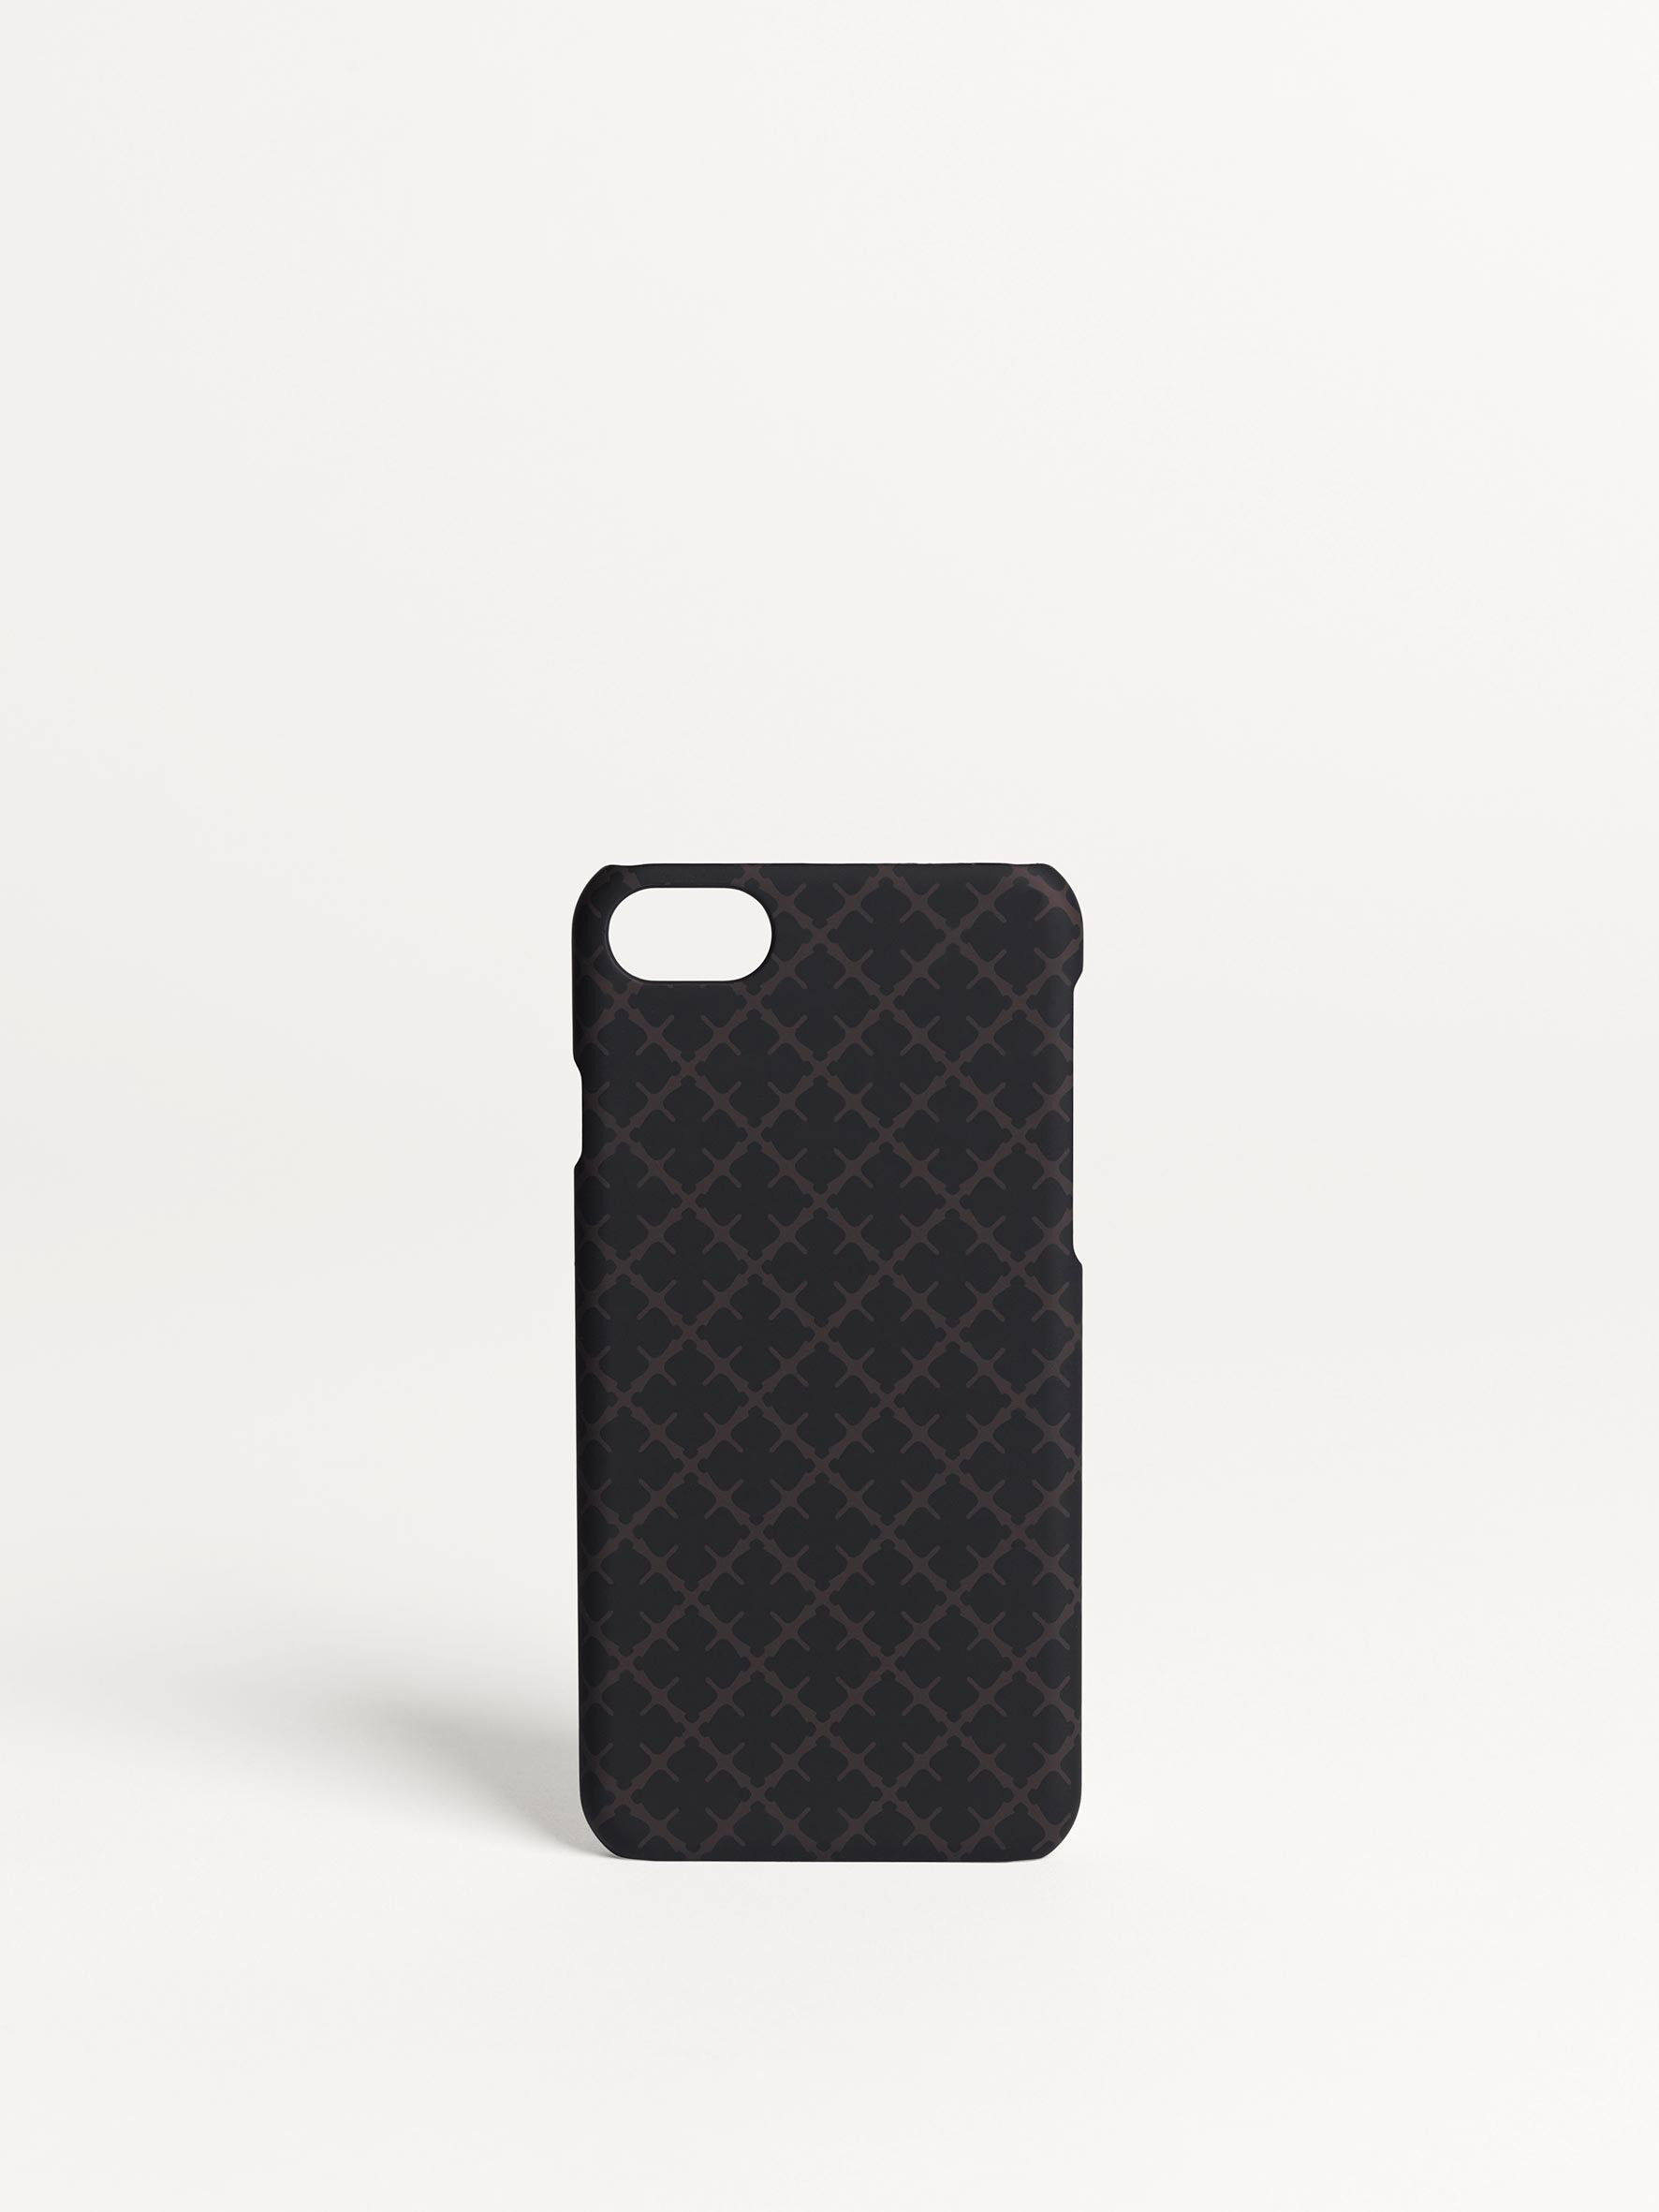 iPhone 7/8 cover - Buy iPhone and computer covers online